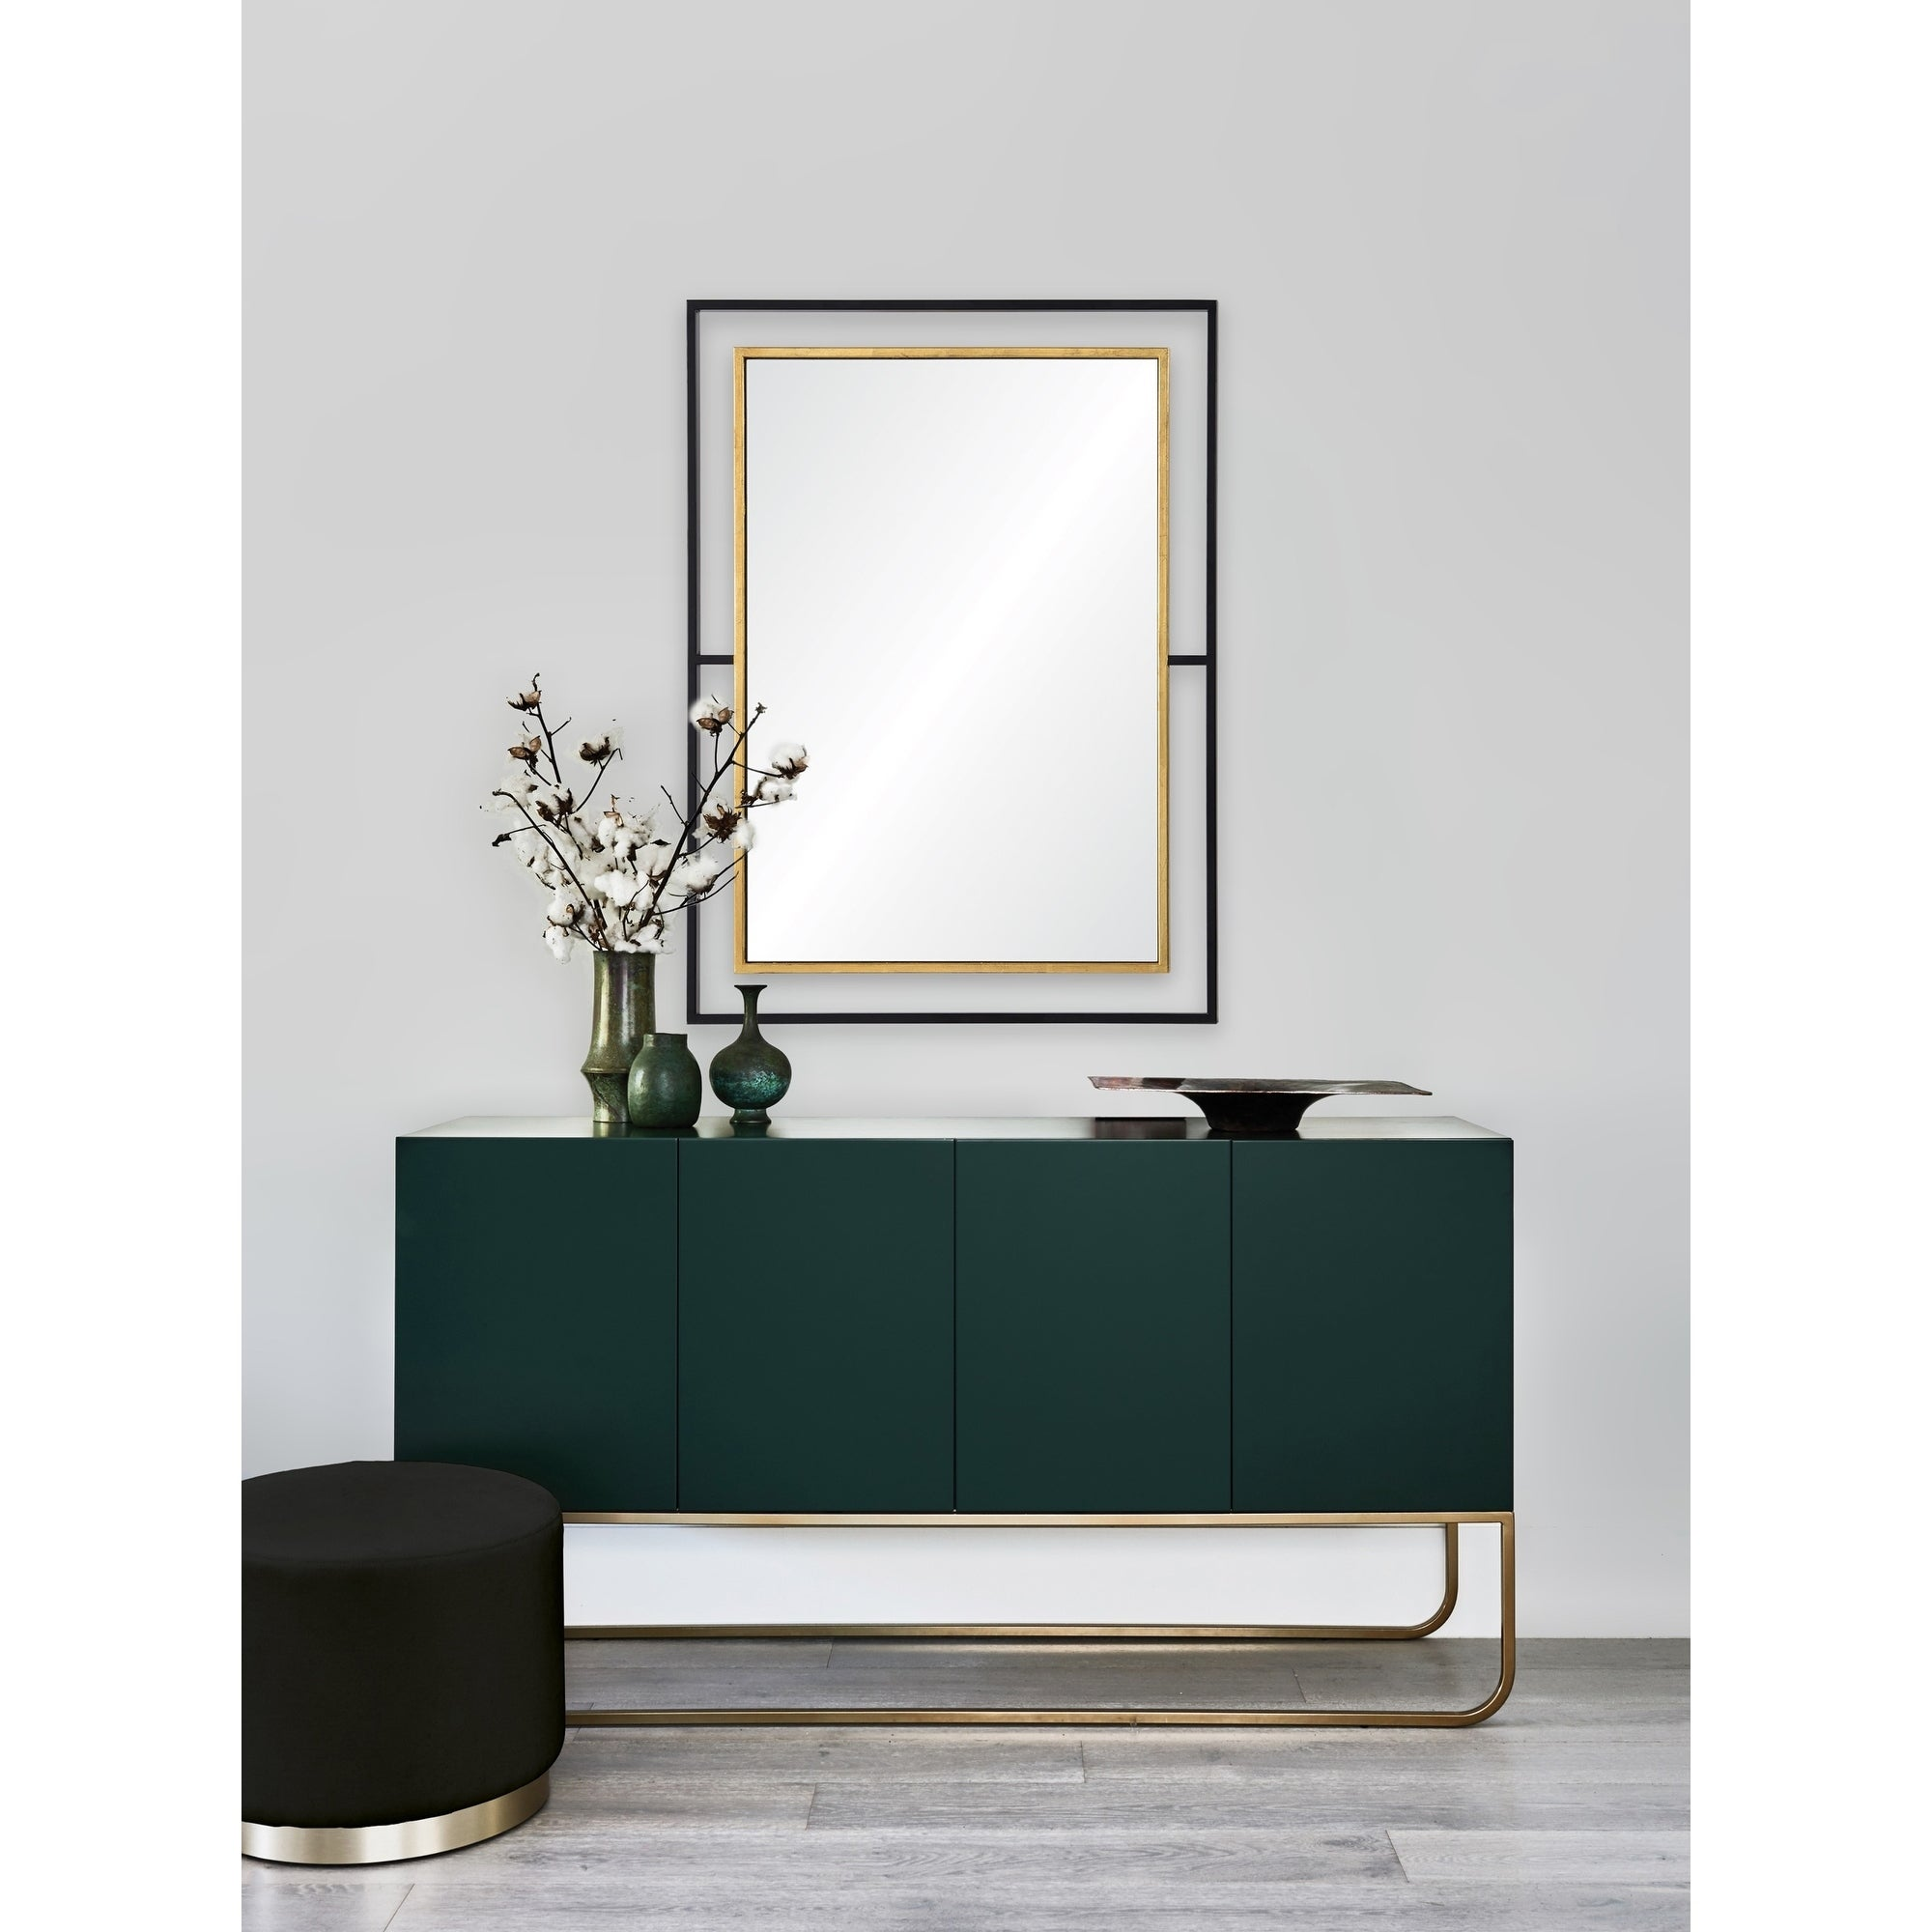 e86fe18edf7 Buy Metal Renwil Mirrors Online at Overstock